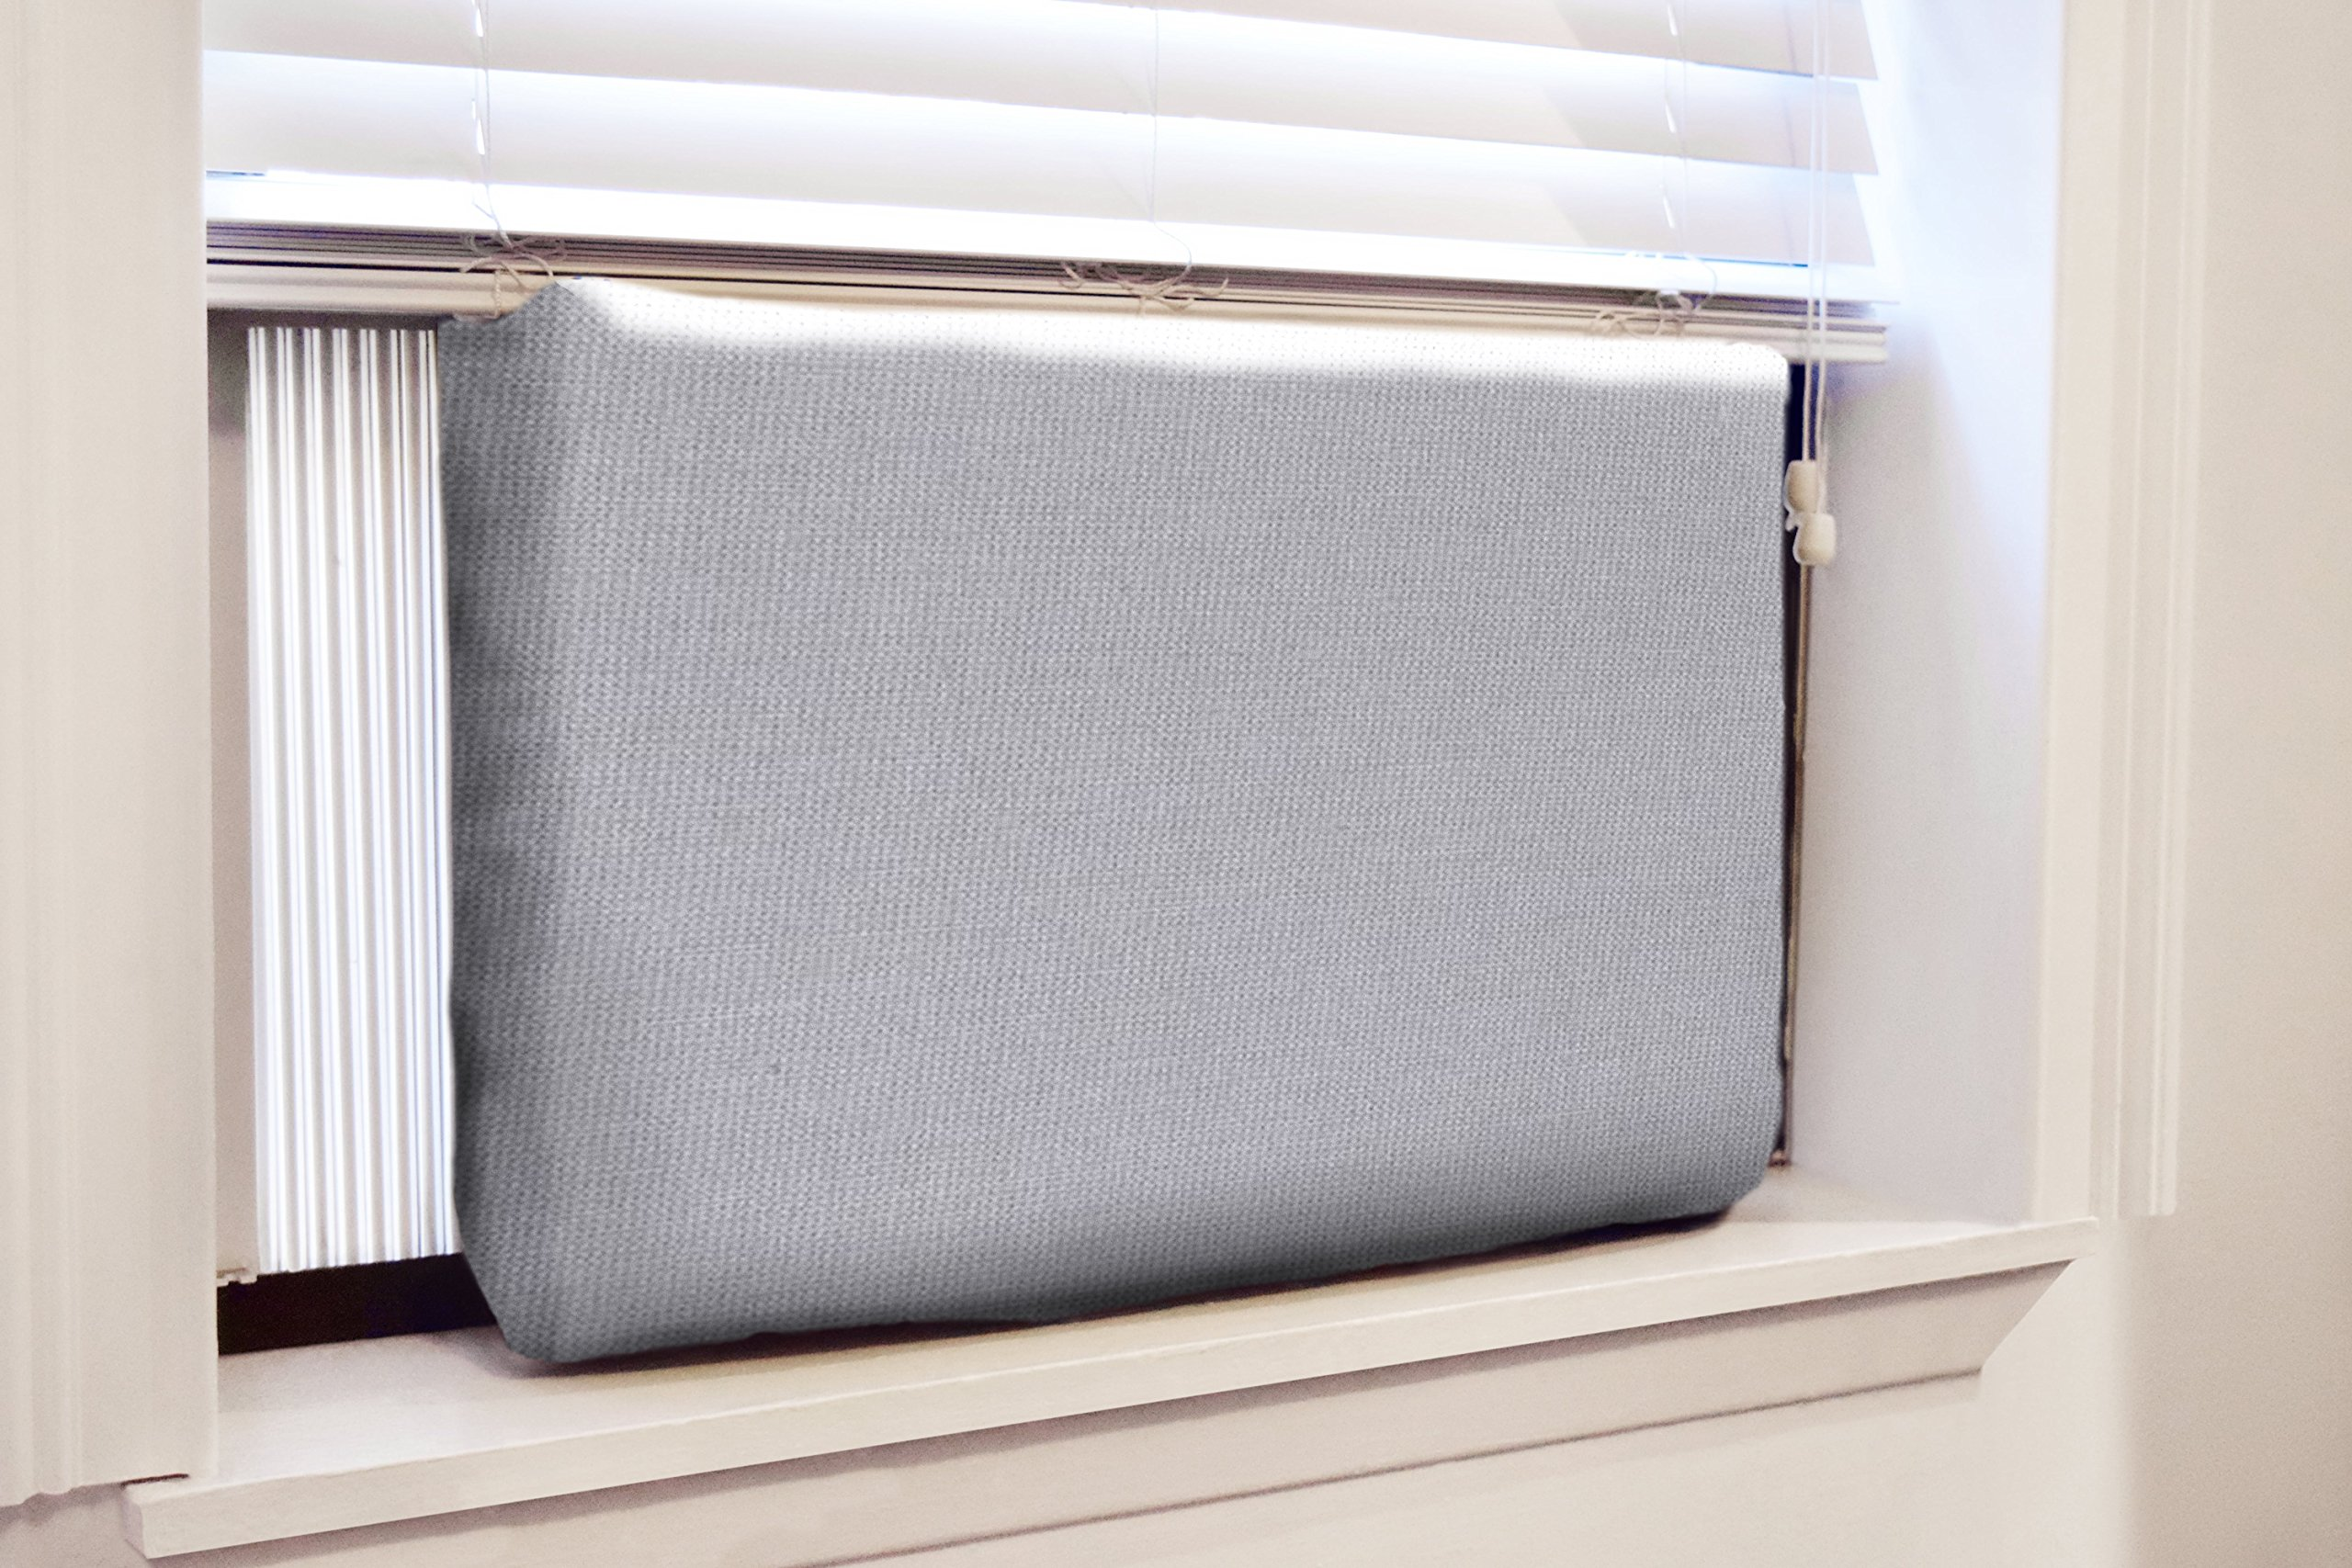 Gerrard Larriett Aromatherapy Pet Care Premium Quilted Indoor Air Conditioner Covers for Window Units 24'' W x 15'' H - Gray